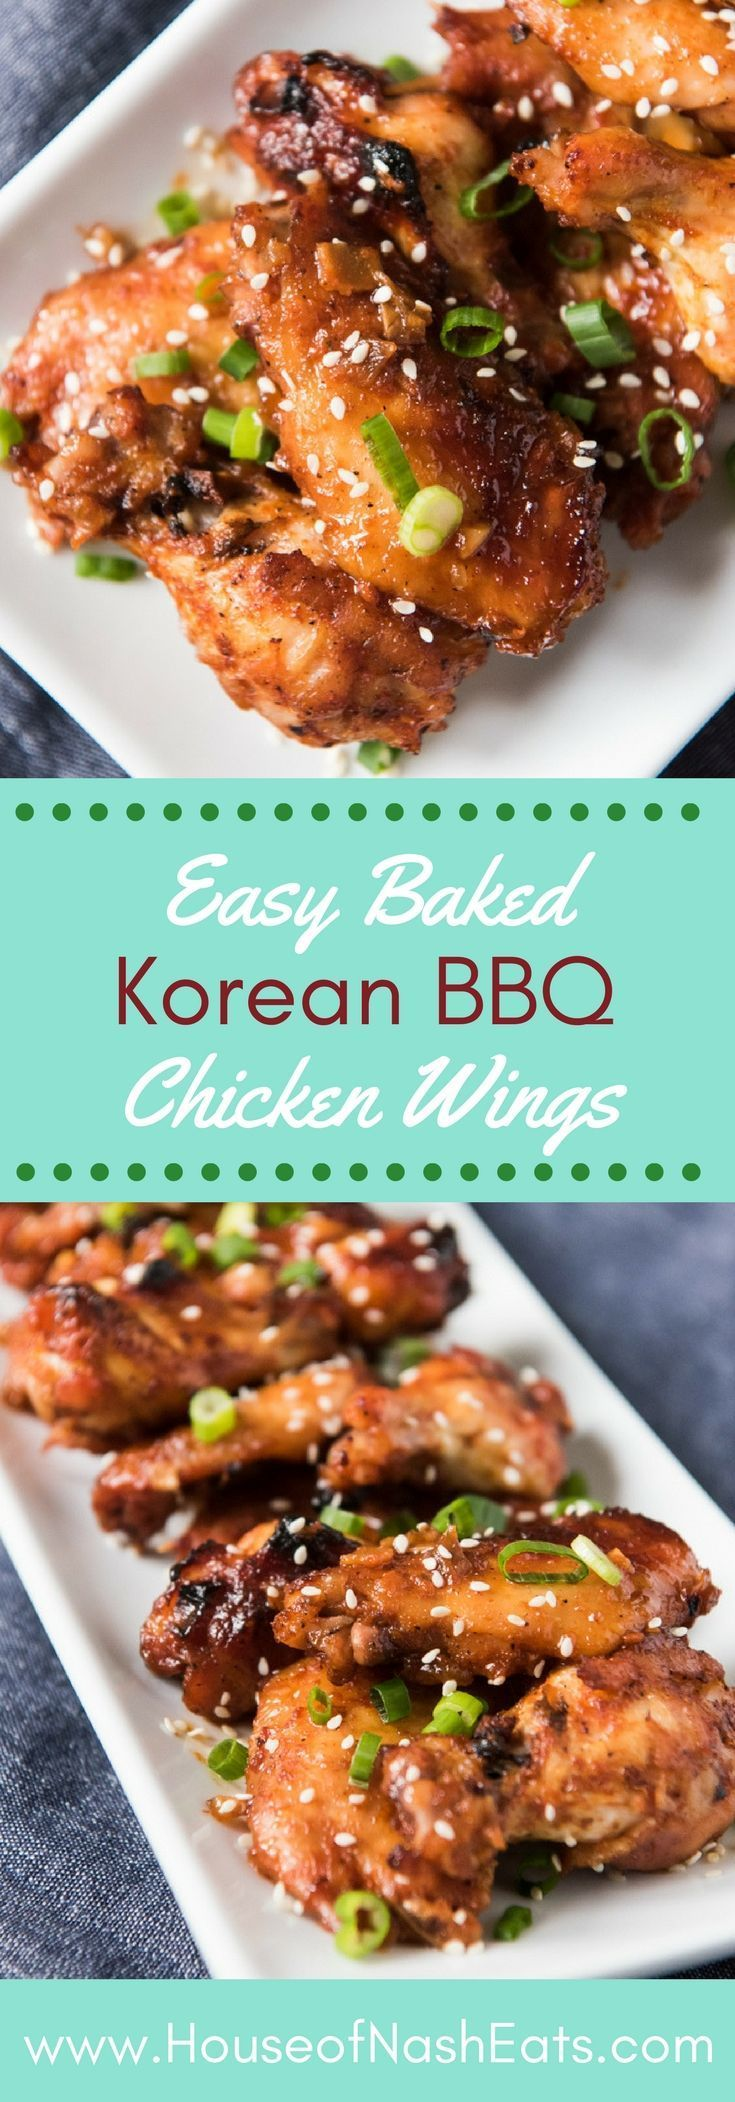 Oven Baked Korean Bbq Chicken Wings Are Sweet Savory Spicy Thanks To A Korean Red Chile Pepper Paste Calle Korean Bbq Chicken Bbq Chicken Wings Bbq Recipes